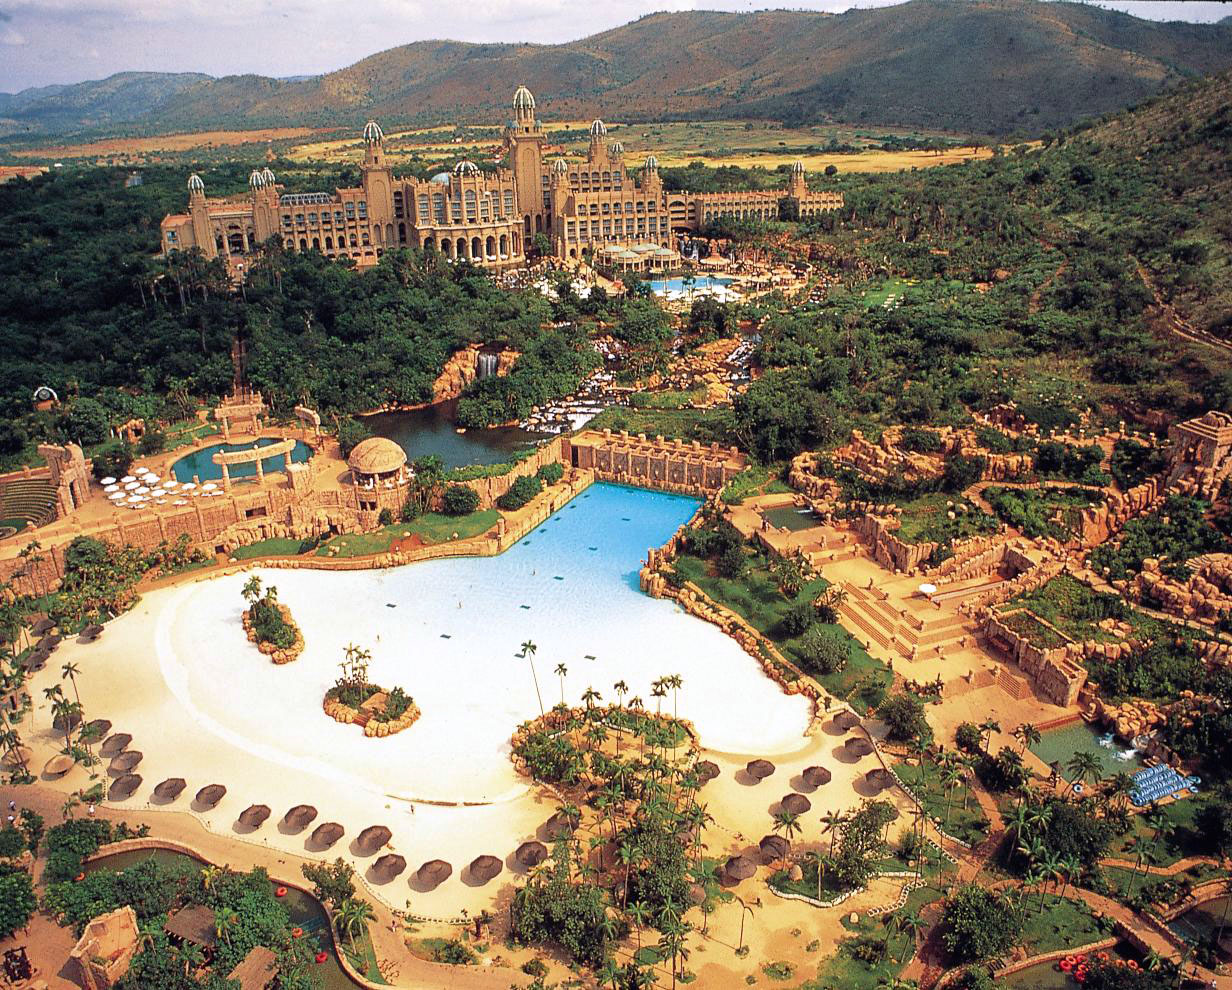 The Palace of the Lost City at Sun City Resort - Hotel in